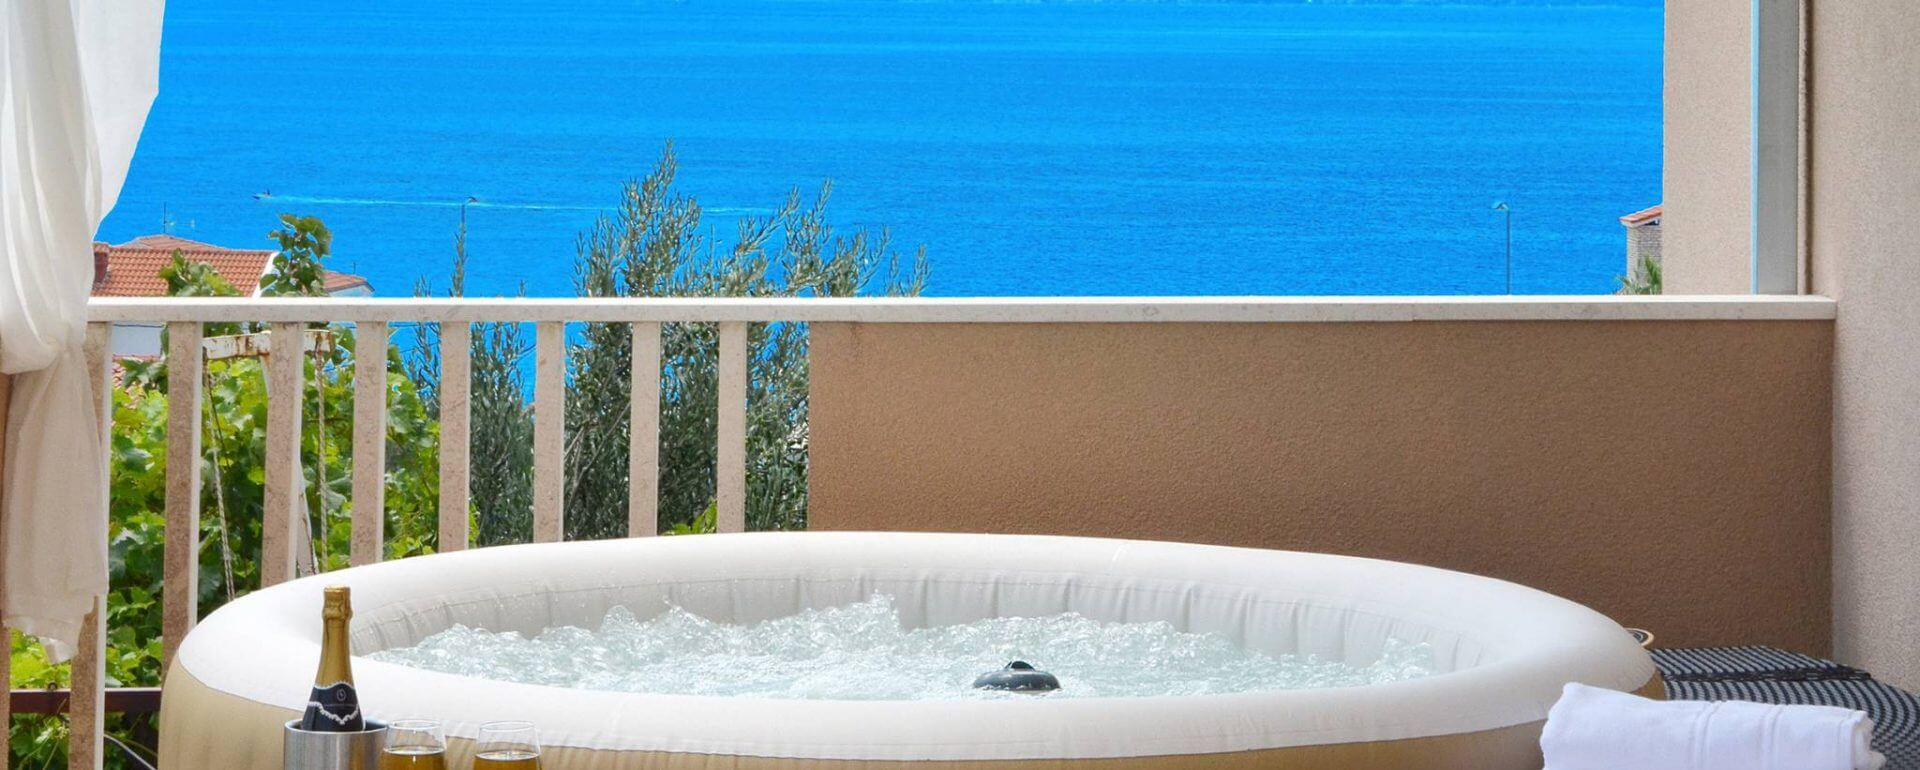 Apartment in Podstrana with the private hot tub